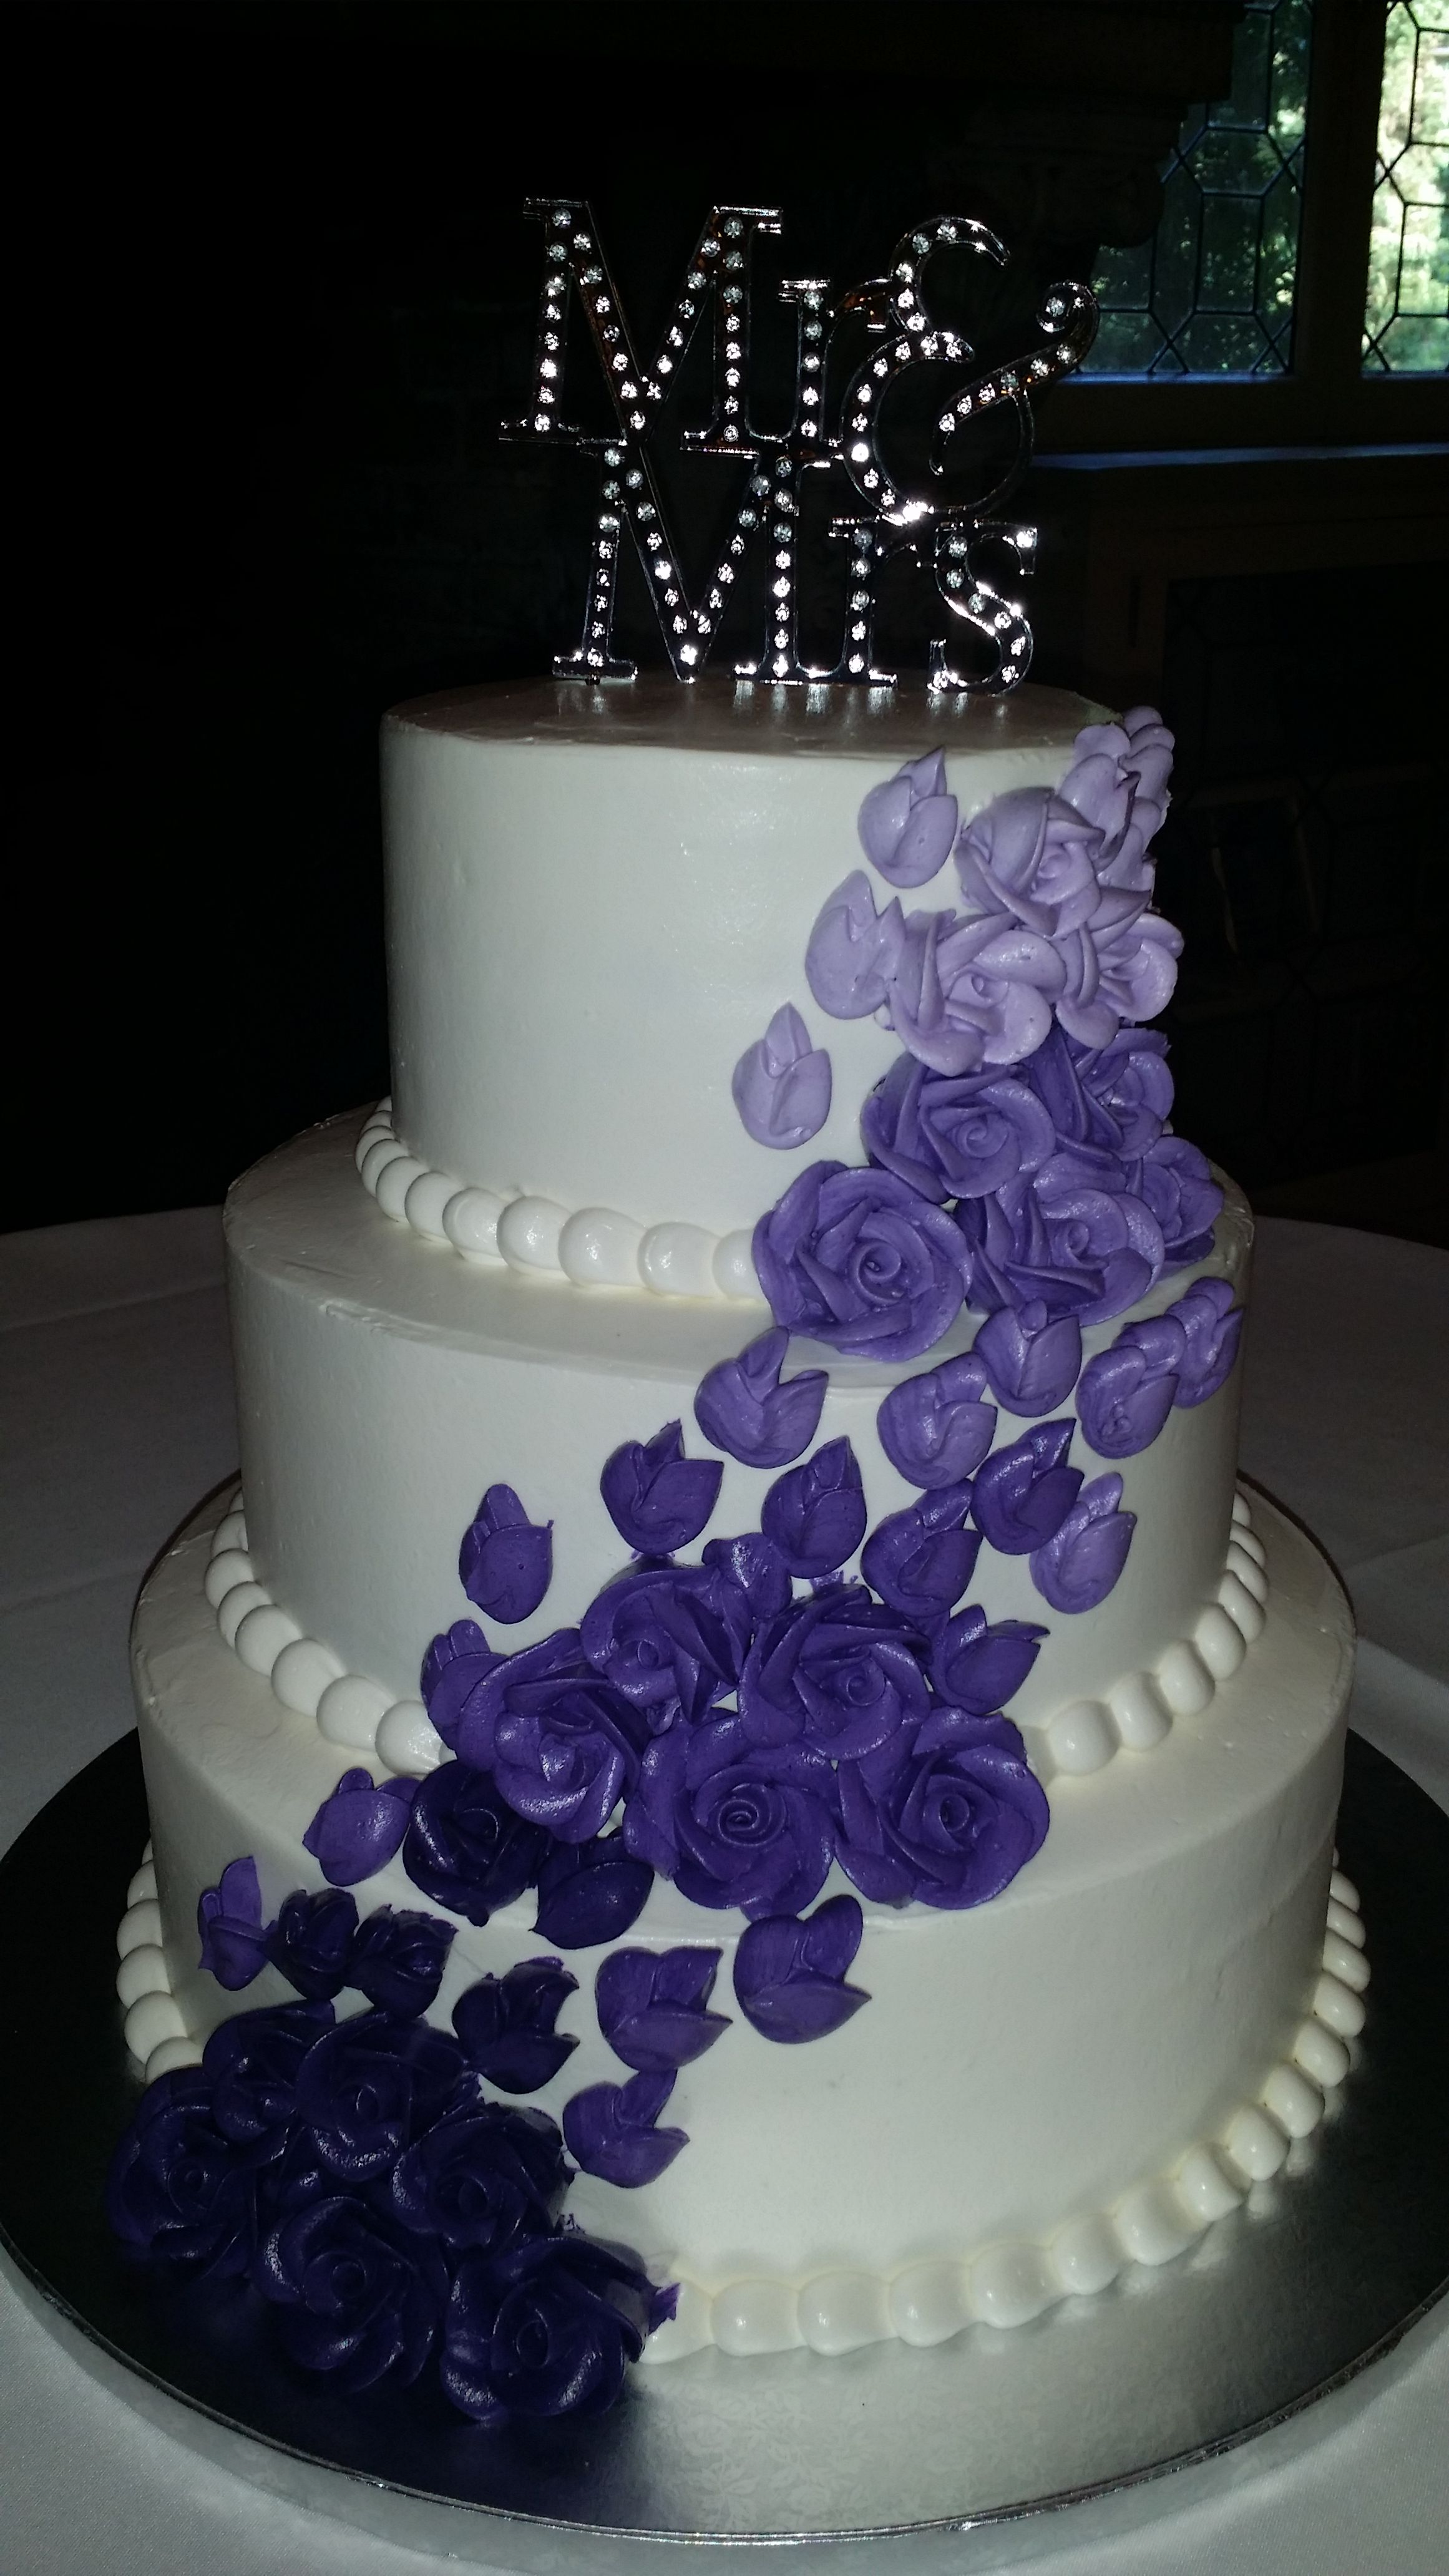 Cake by publix cake